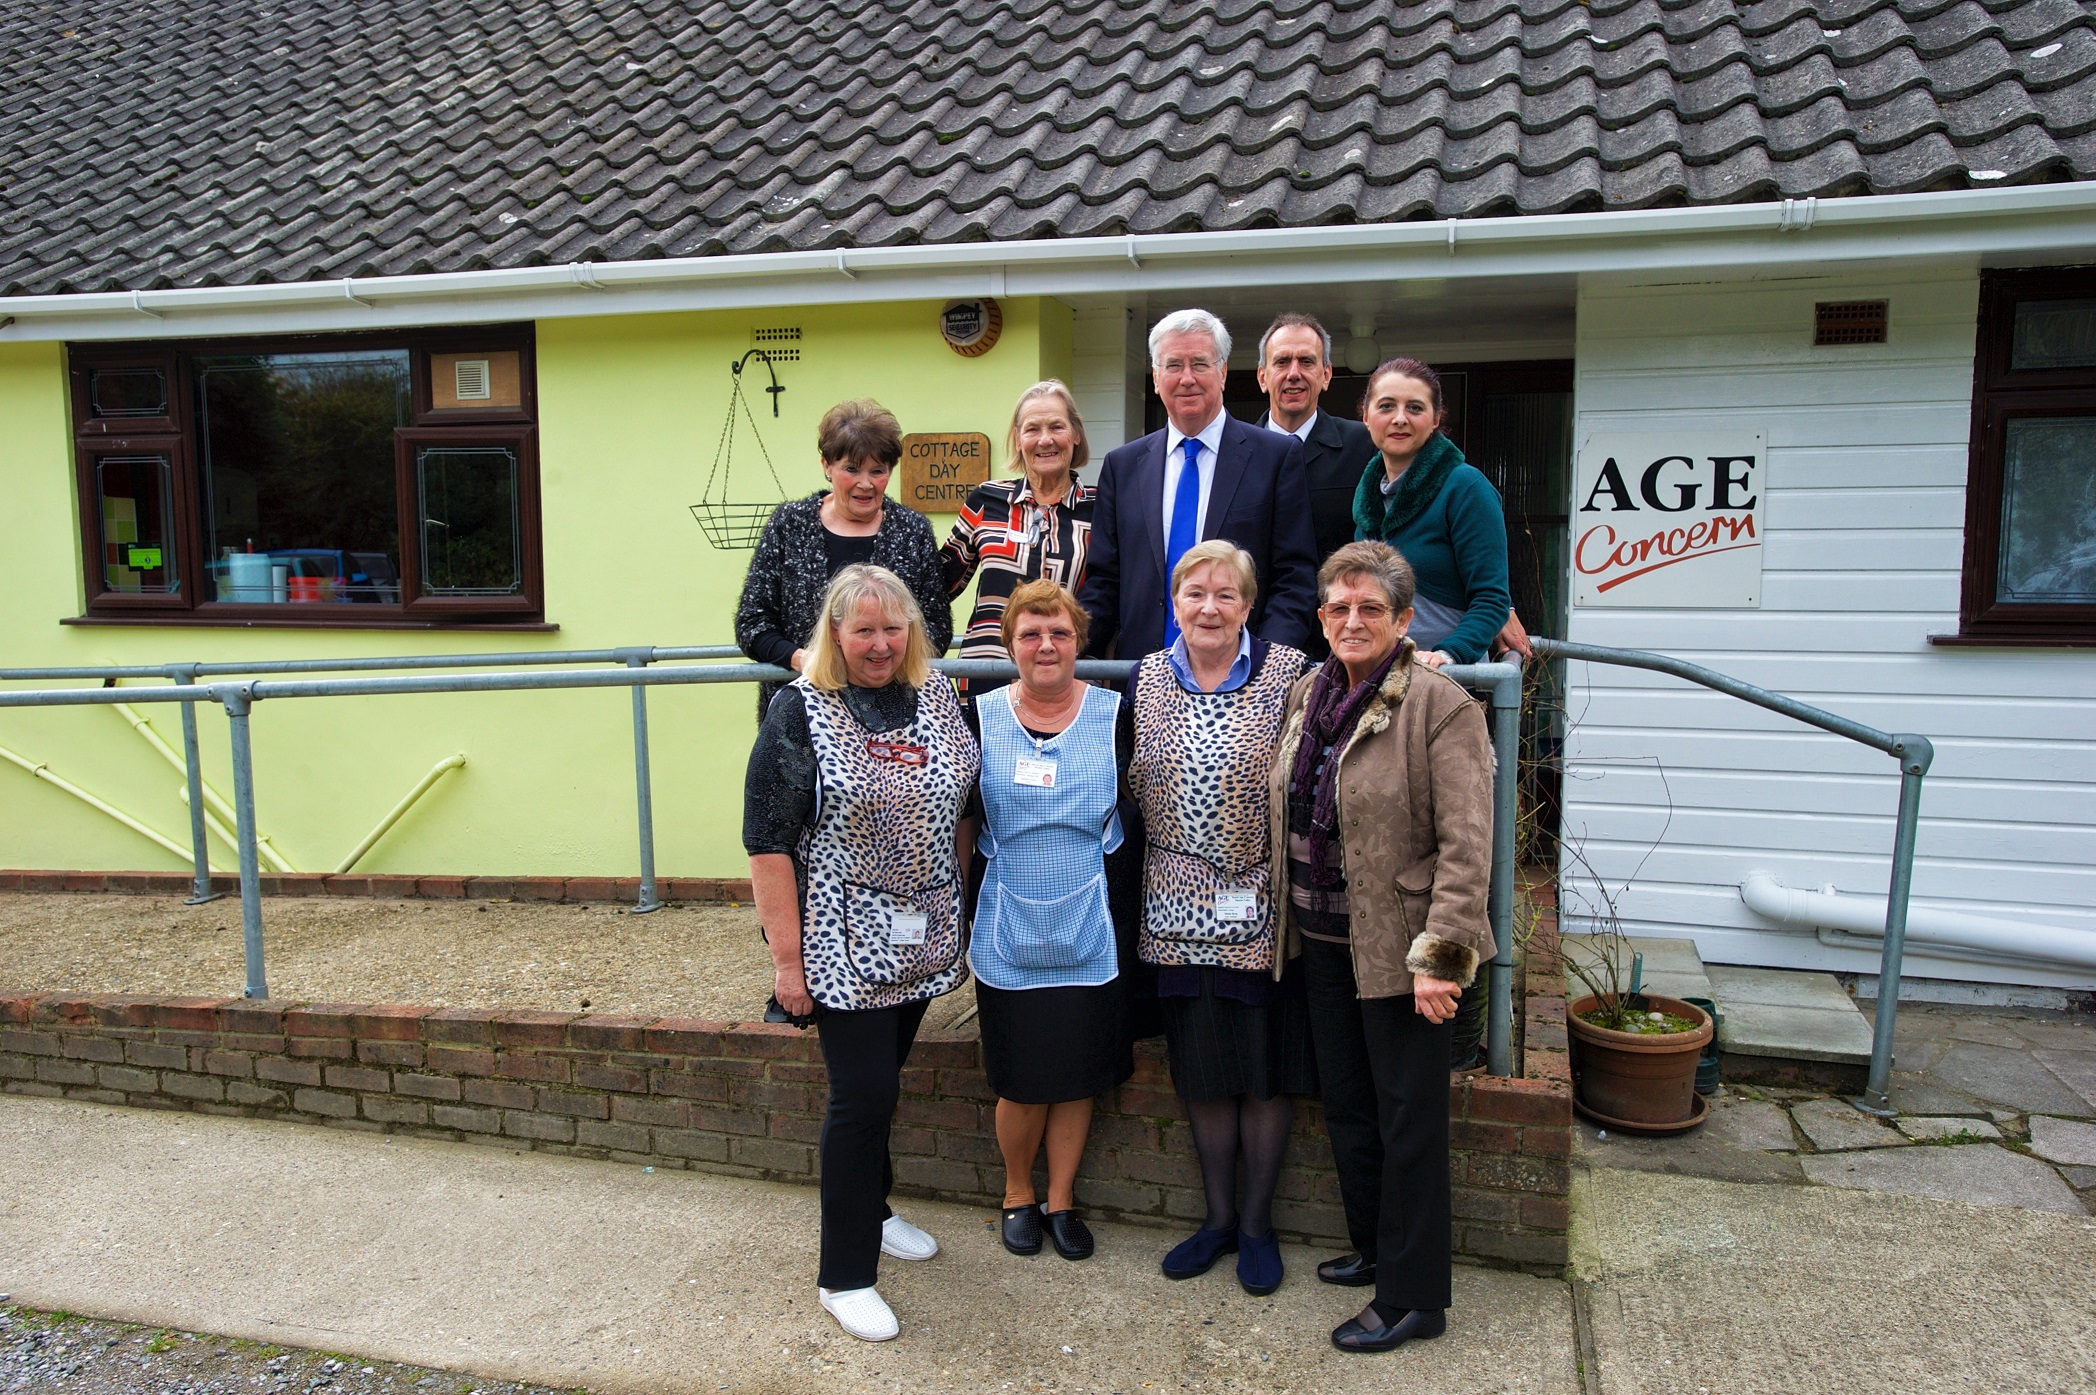 Michael with Trustees and staff outside the Cottage Day Centre